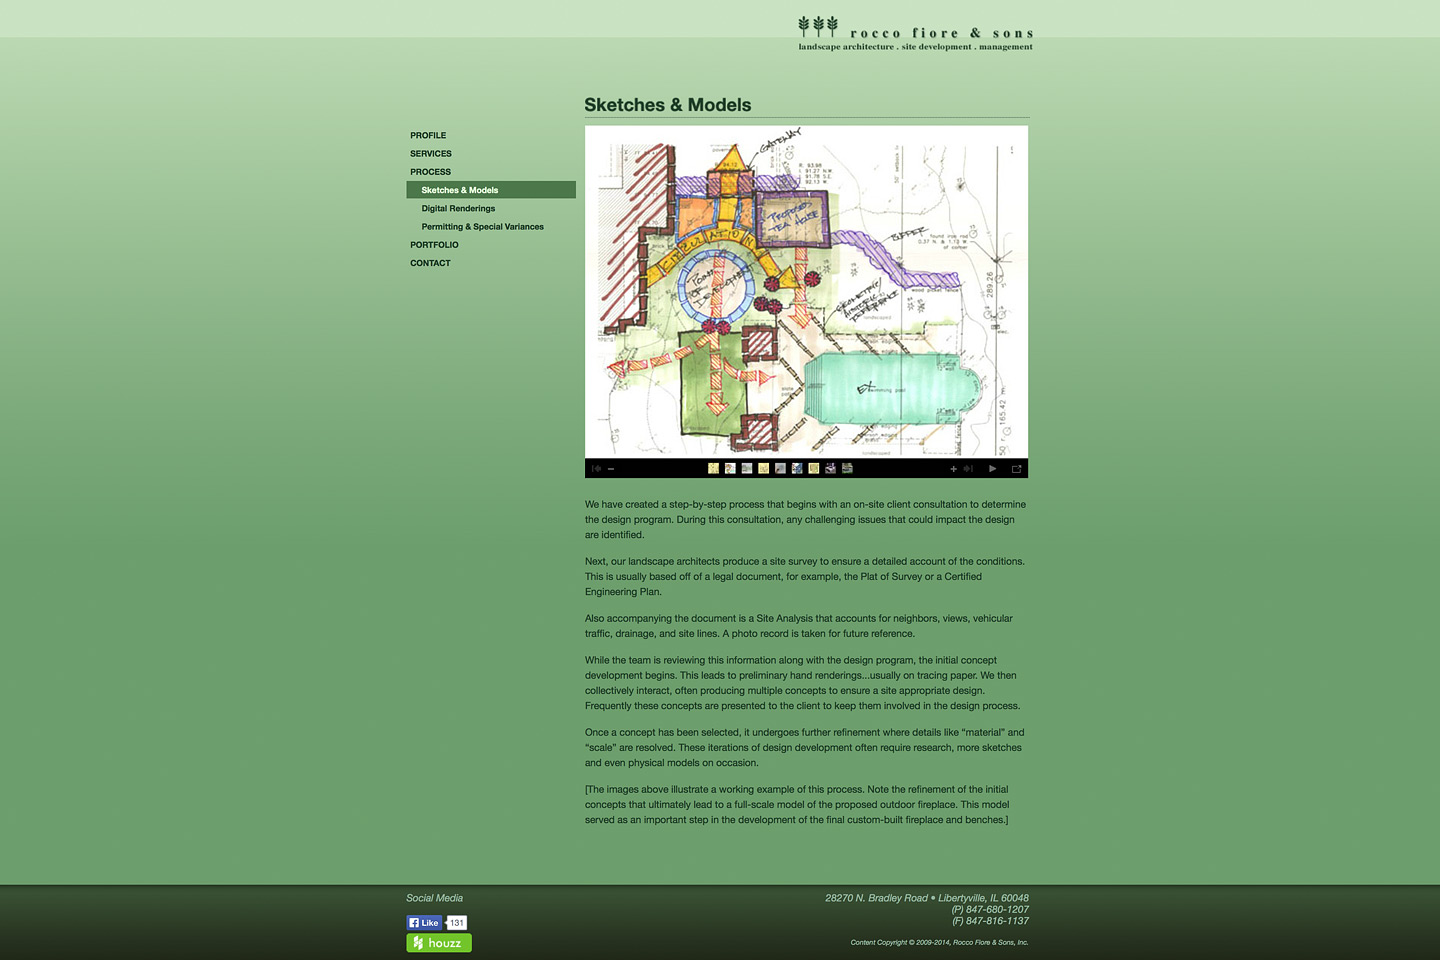 a screen capture of the rocco fiore & sons sketches & models web page designed by 4d, inc, featuring a nice colorful design sketch rendering